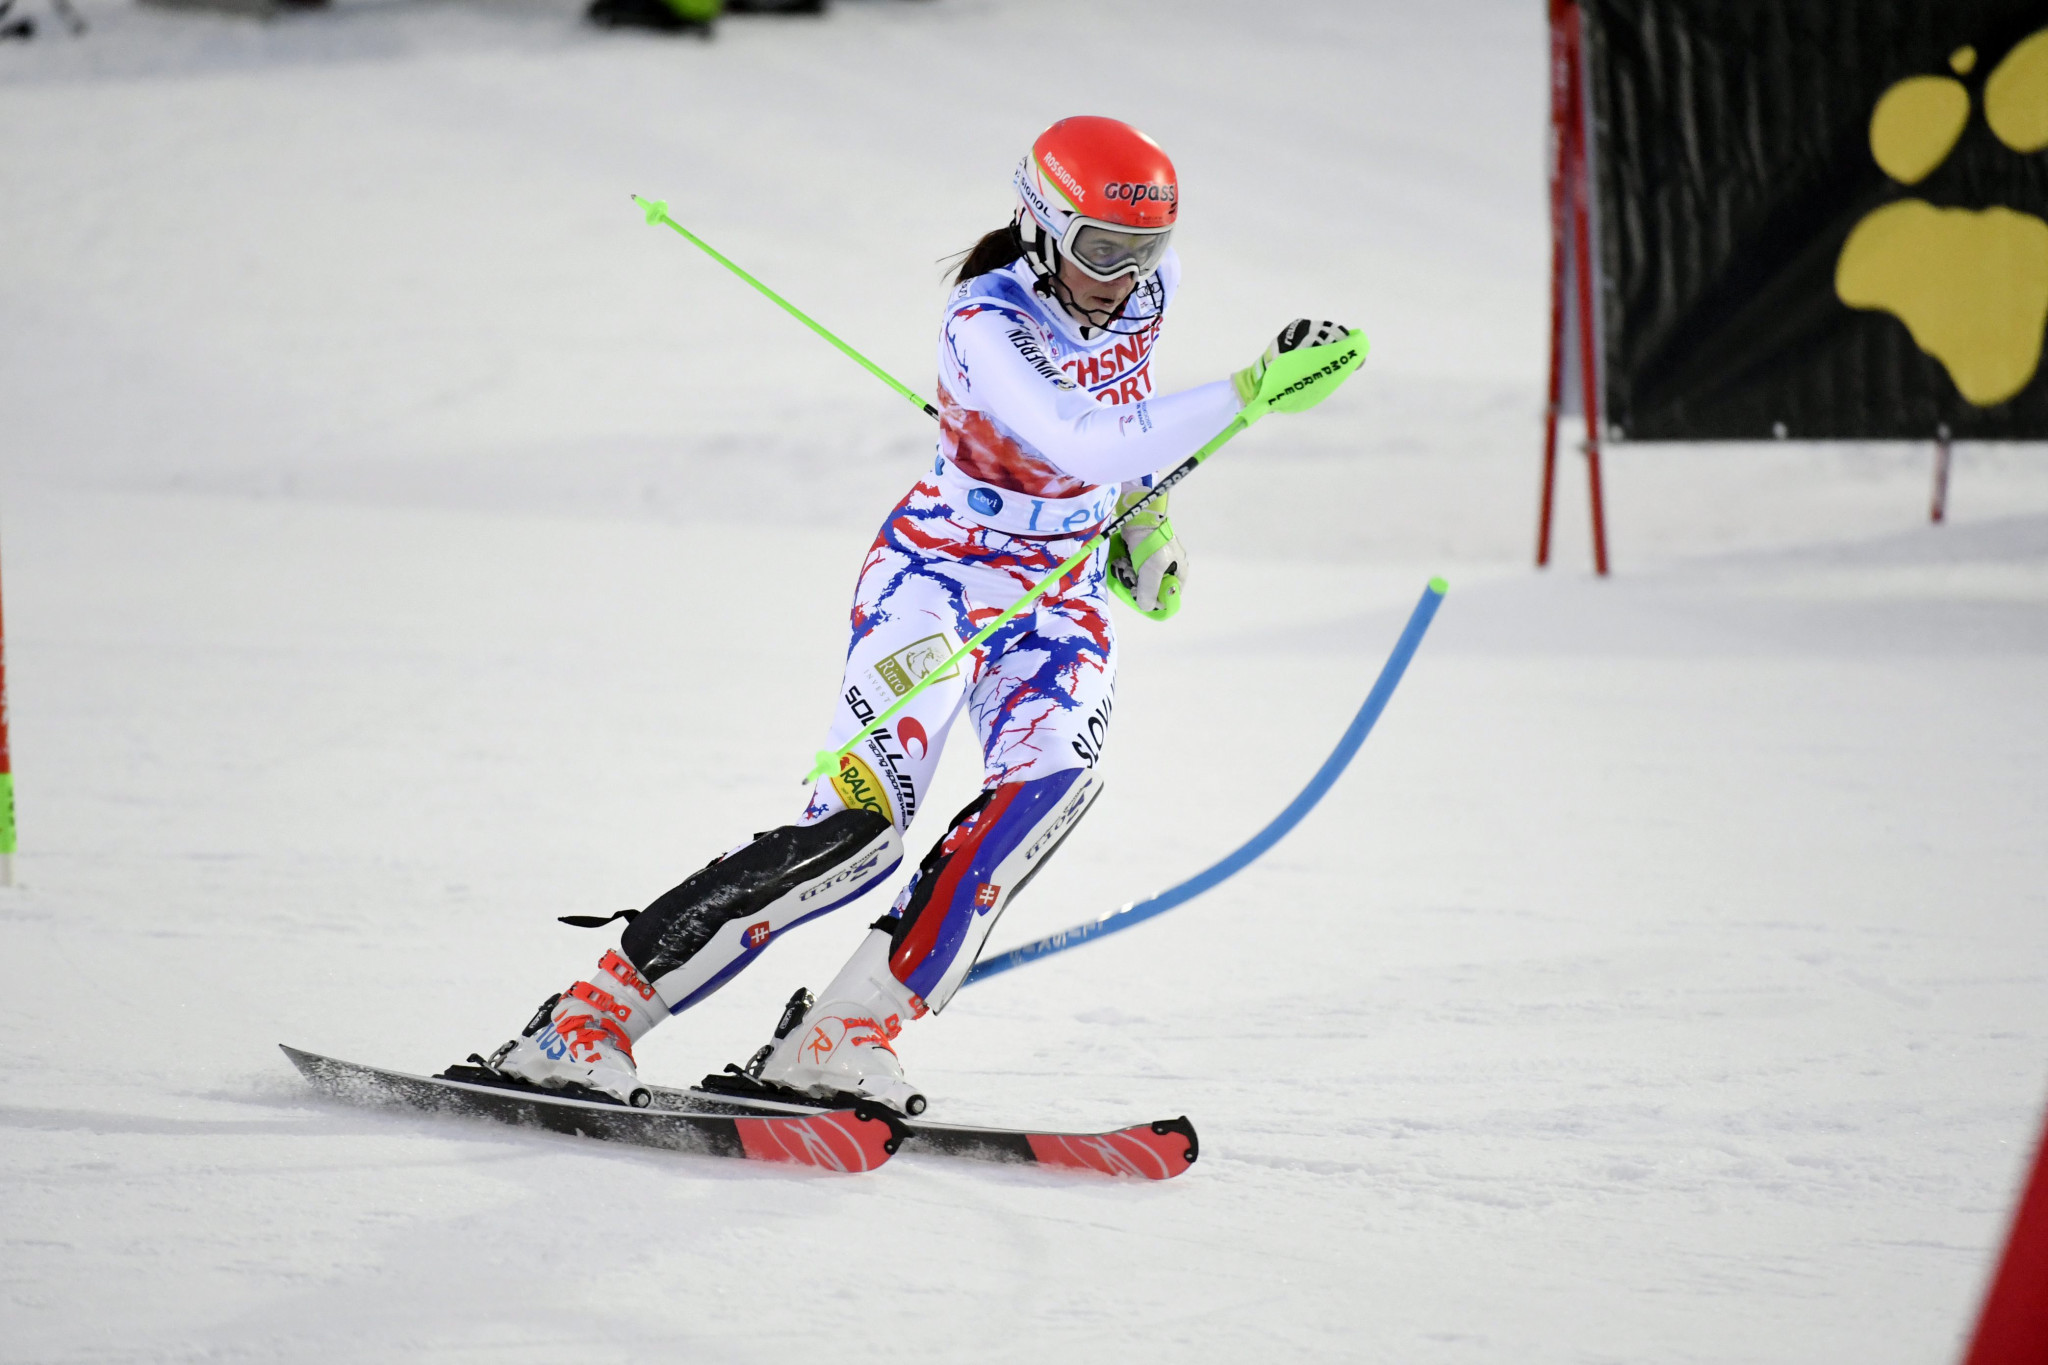 EagleVail's Mikaela Shiffrin finishes second in season's first World Cup slalom race